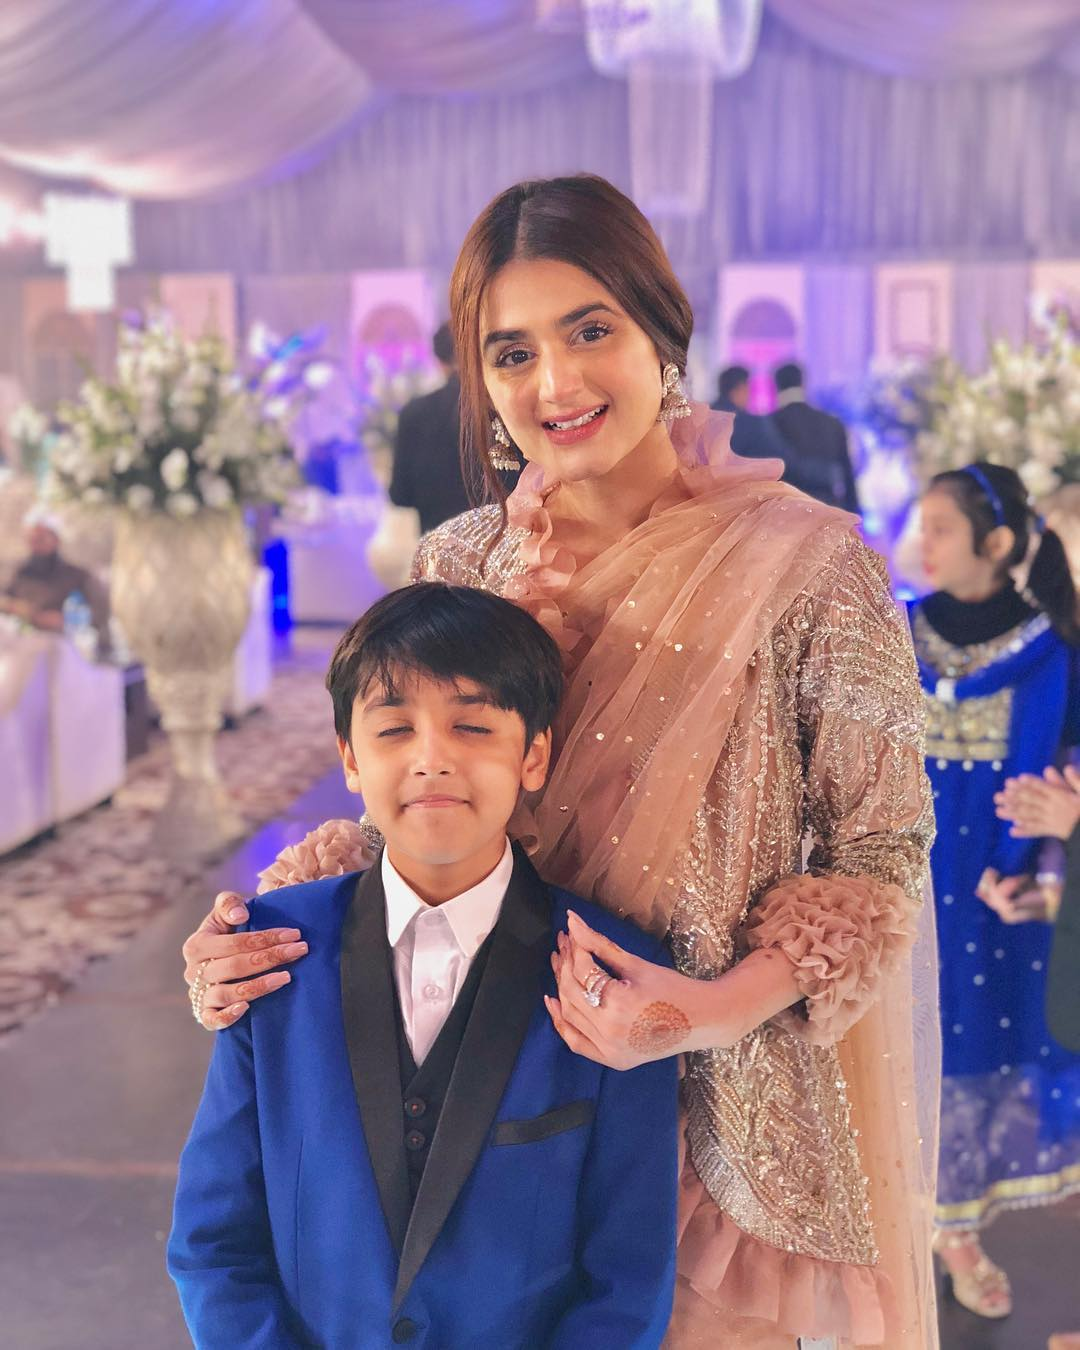 Beautiful Clicks of Hira and Mani with their Kids at a Wedding Event